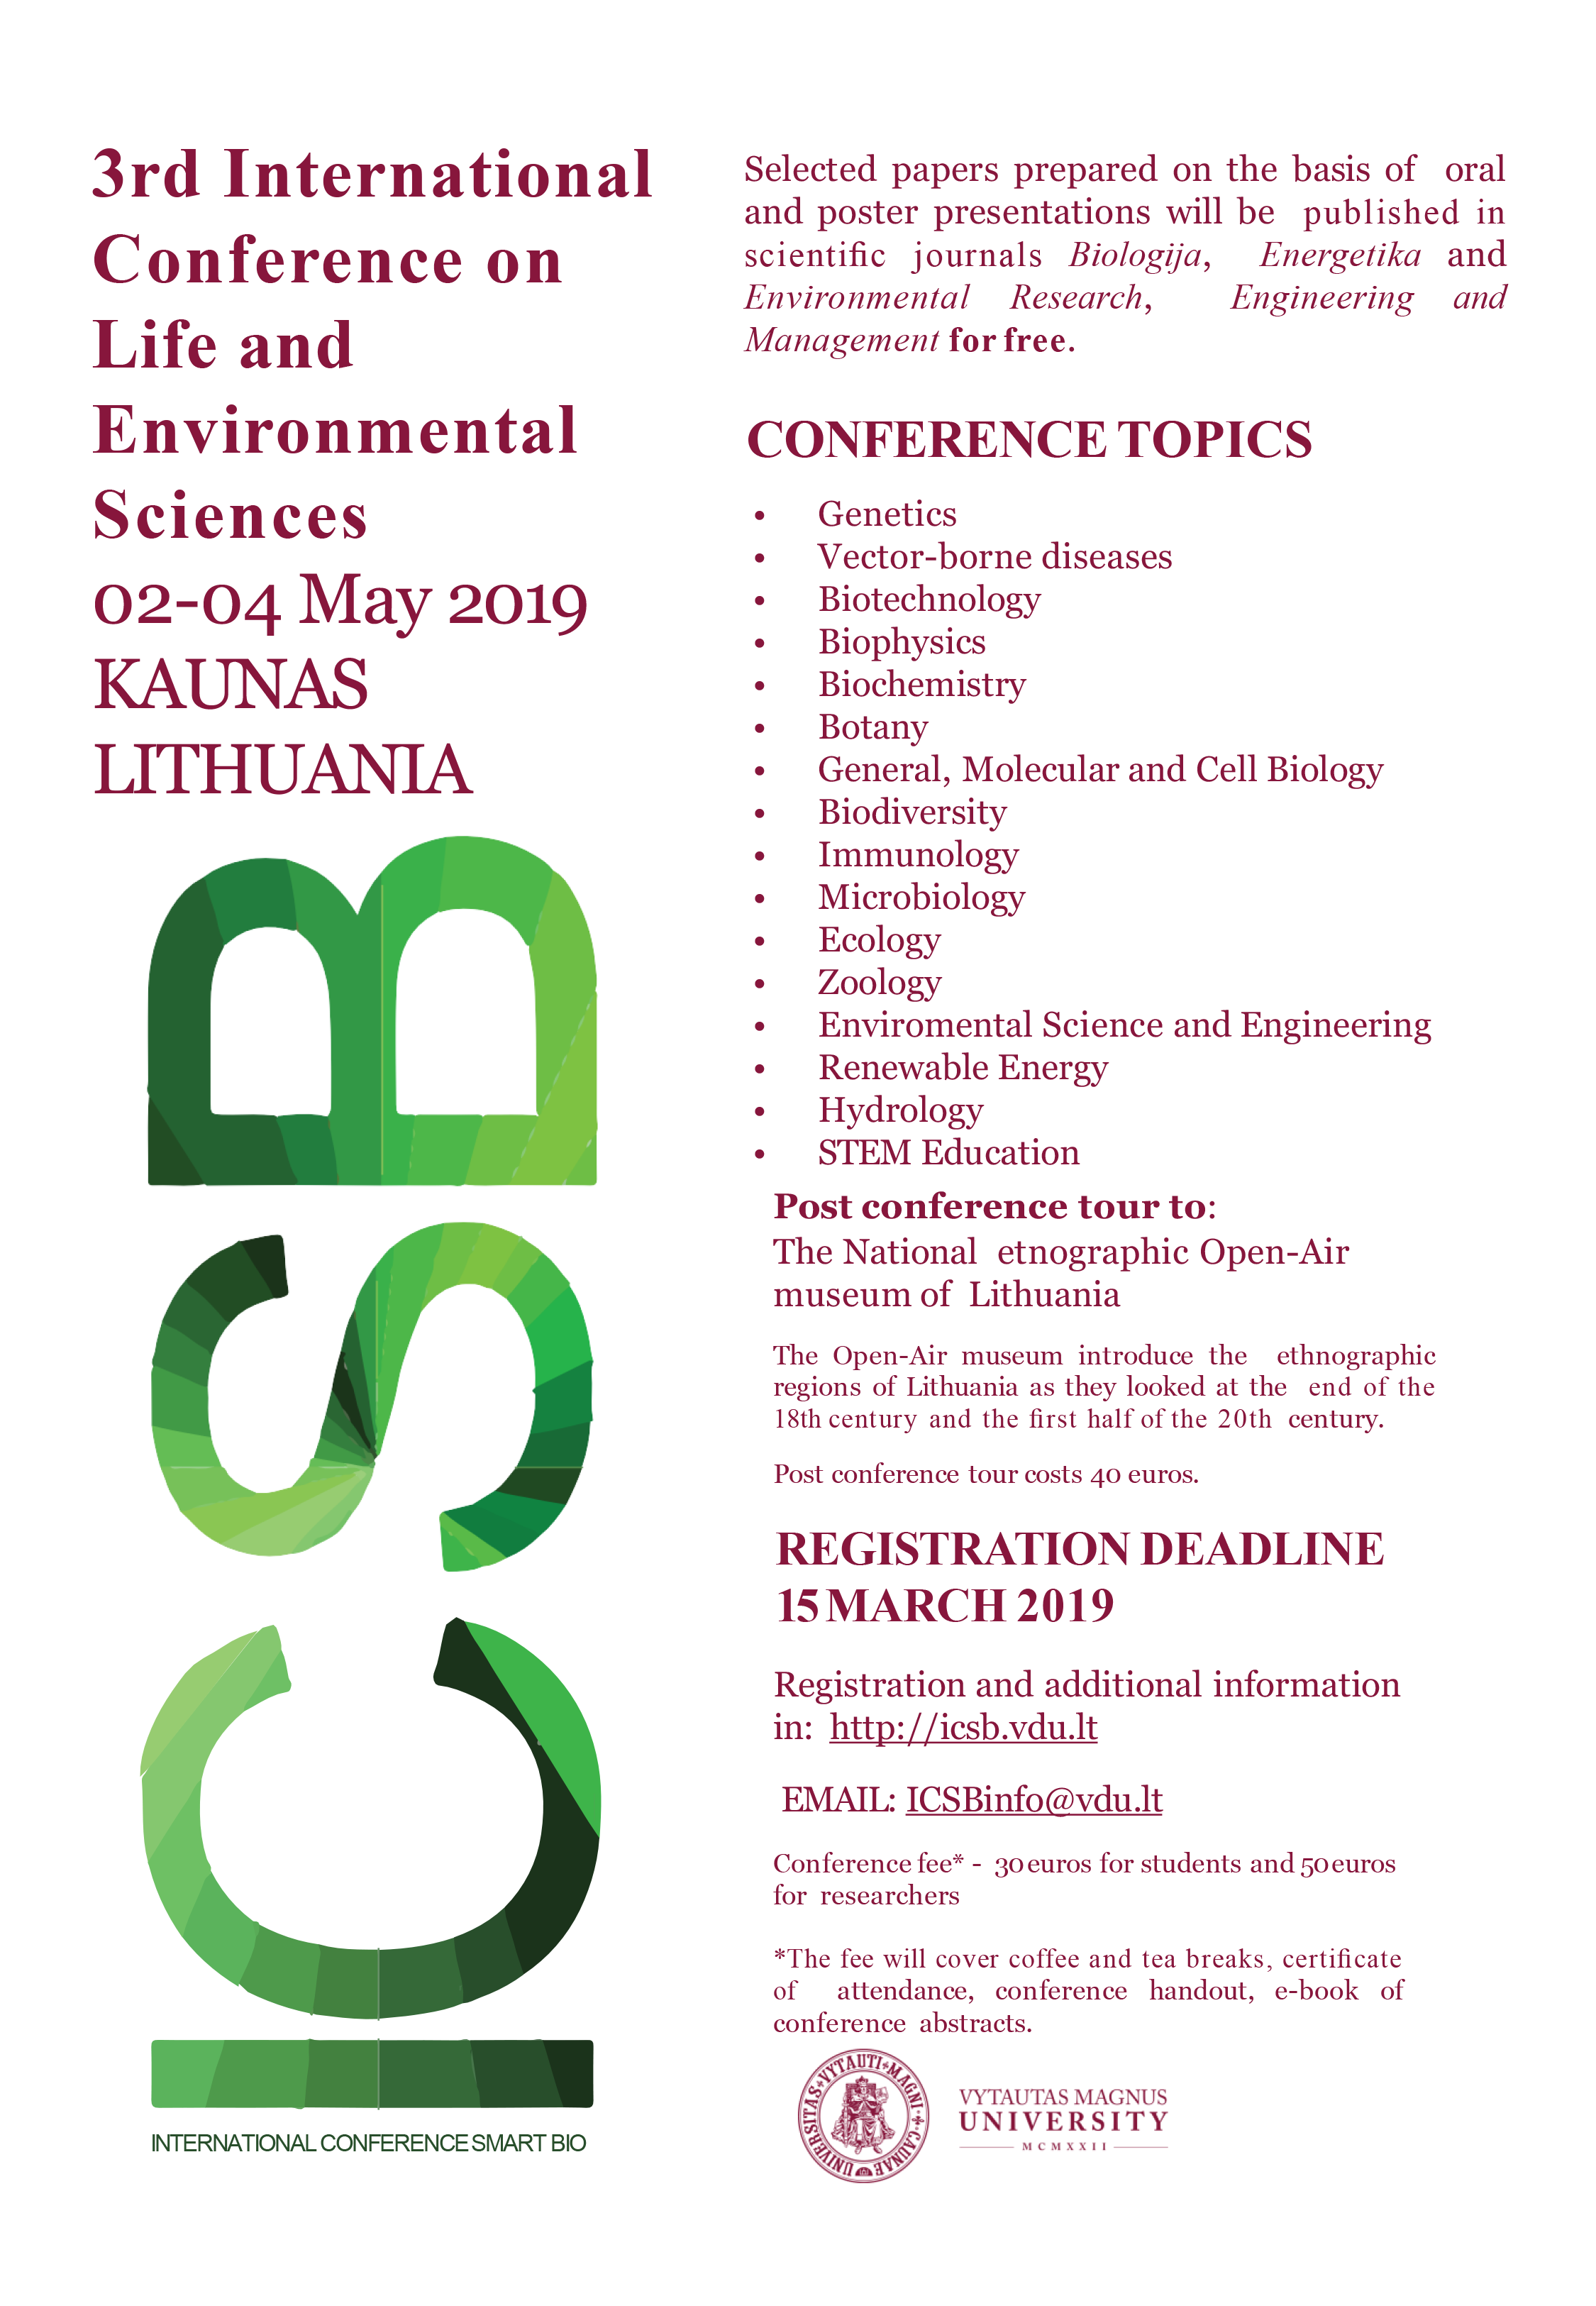 3rd International Conference on Life and Environmental